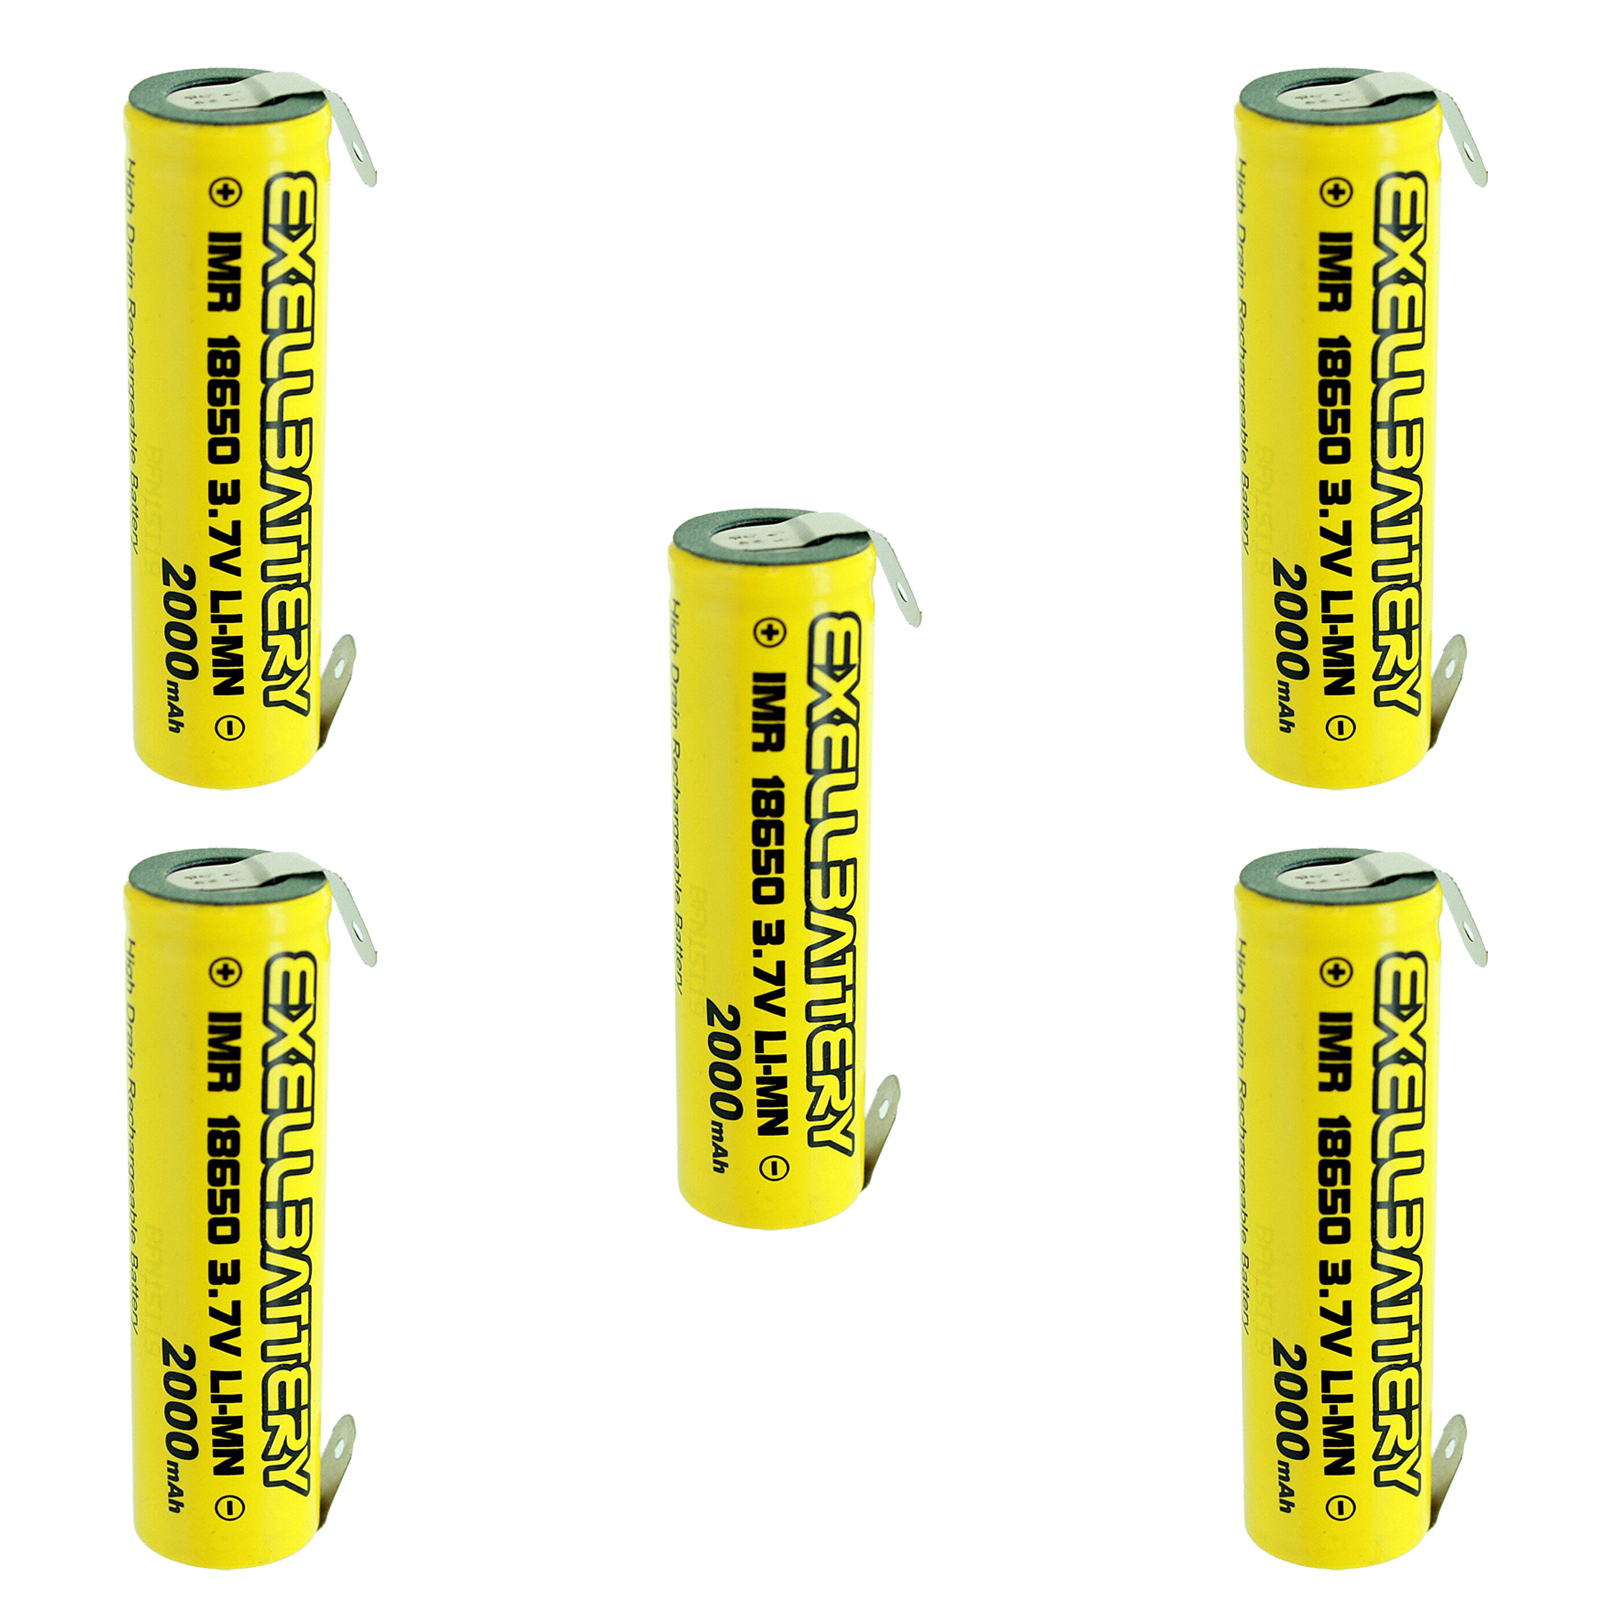 5pc IMR 18650 3.7V LiMN 2000mAh Rechargeable Battery w/ S...